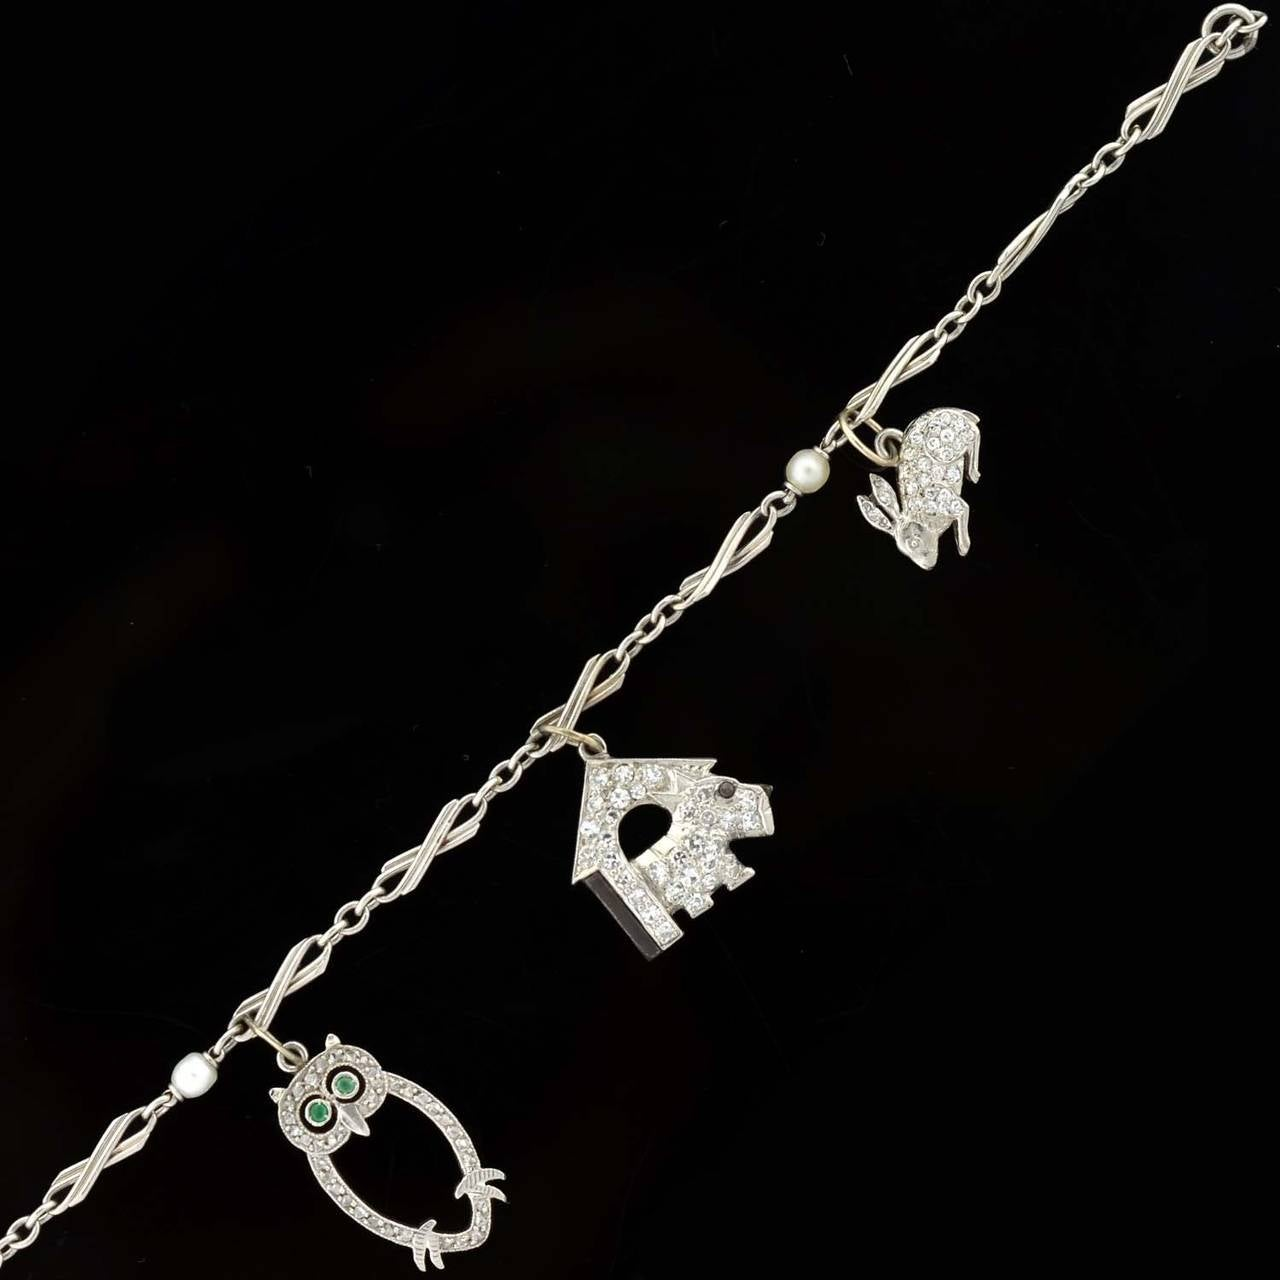 A beautiful charm bracelet from the Art Deco (ca1920) era! This lovely piece is a wonderful compilation of 5 charms which dangle from a fine platinum and pearl chain bracelet. Each charm is unique and all are detailed with a sparkling diamond